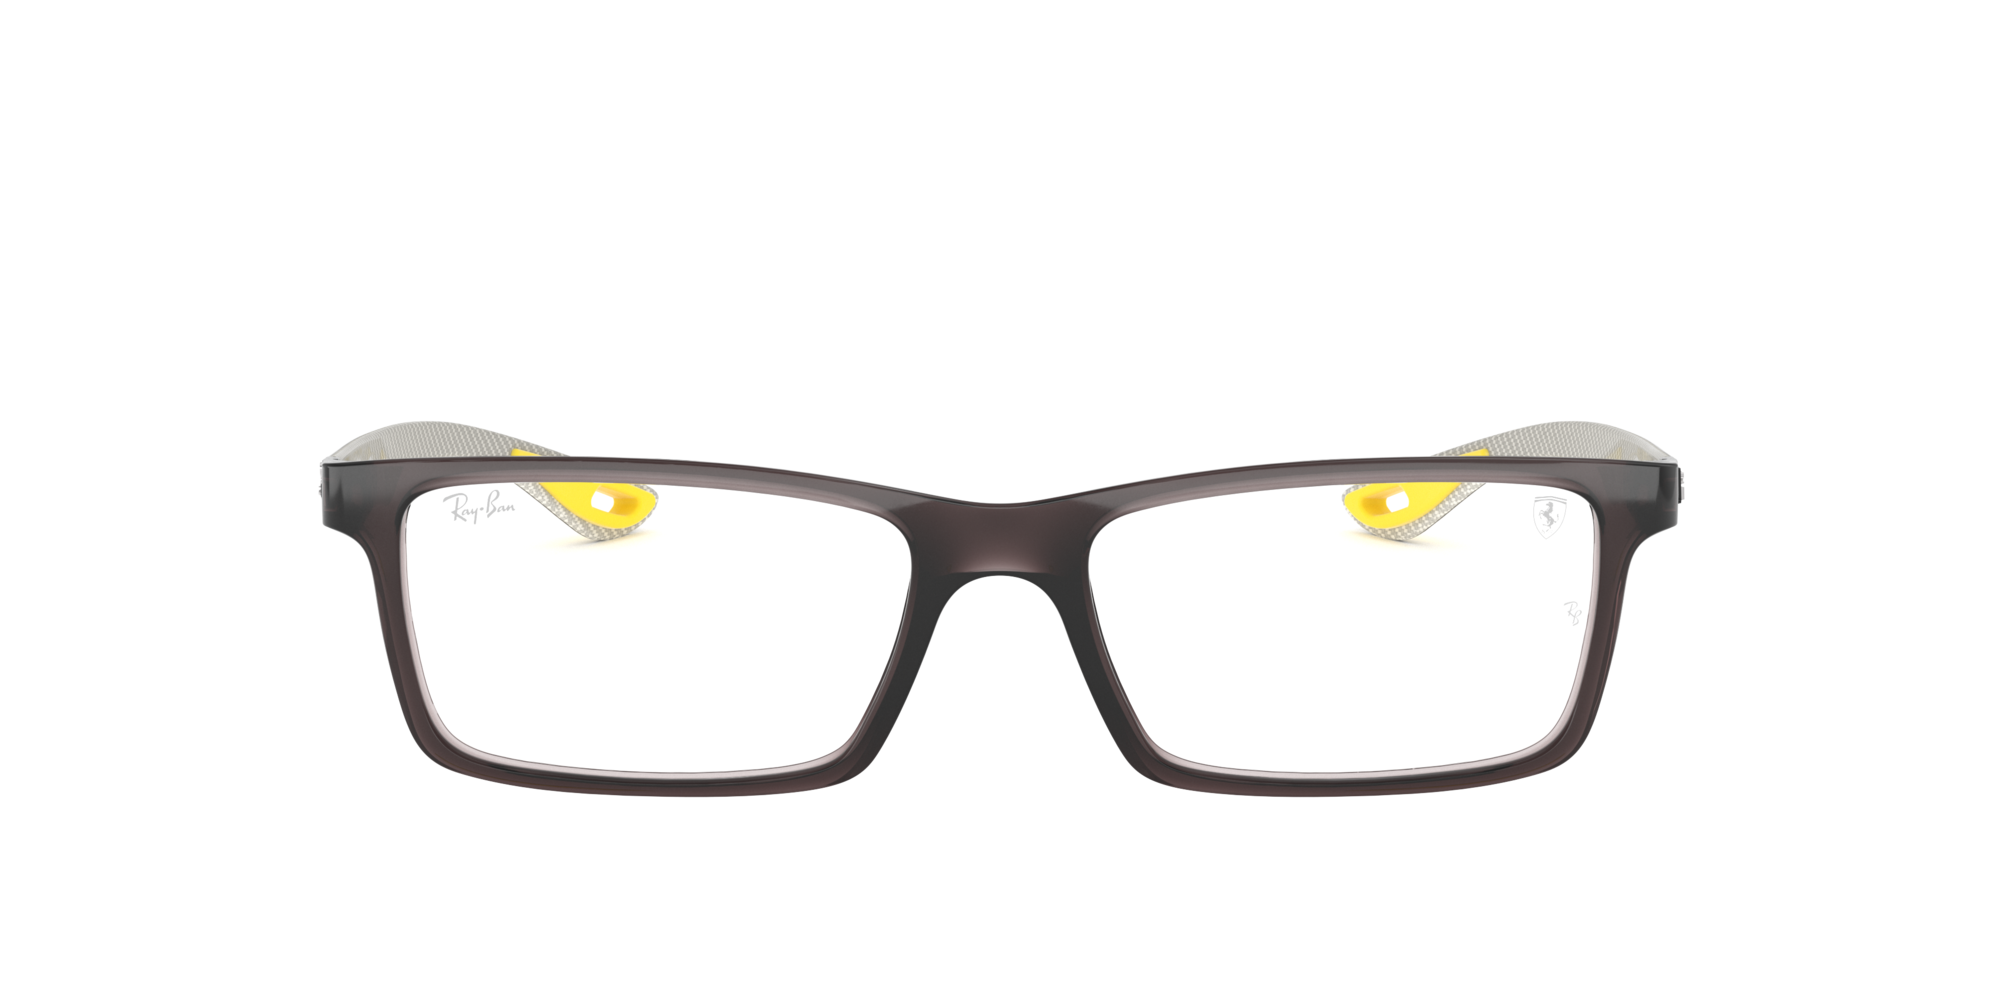 Image for RX8901M FERRARI from LensCrafters | Glasses, Prescription Glasses Online, Eyewear